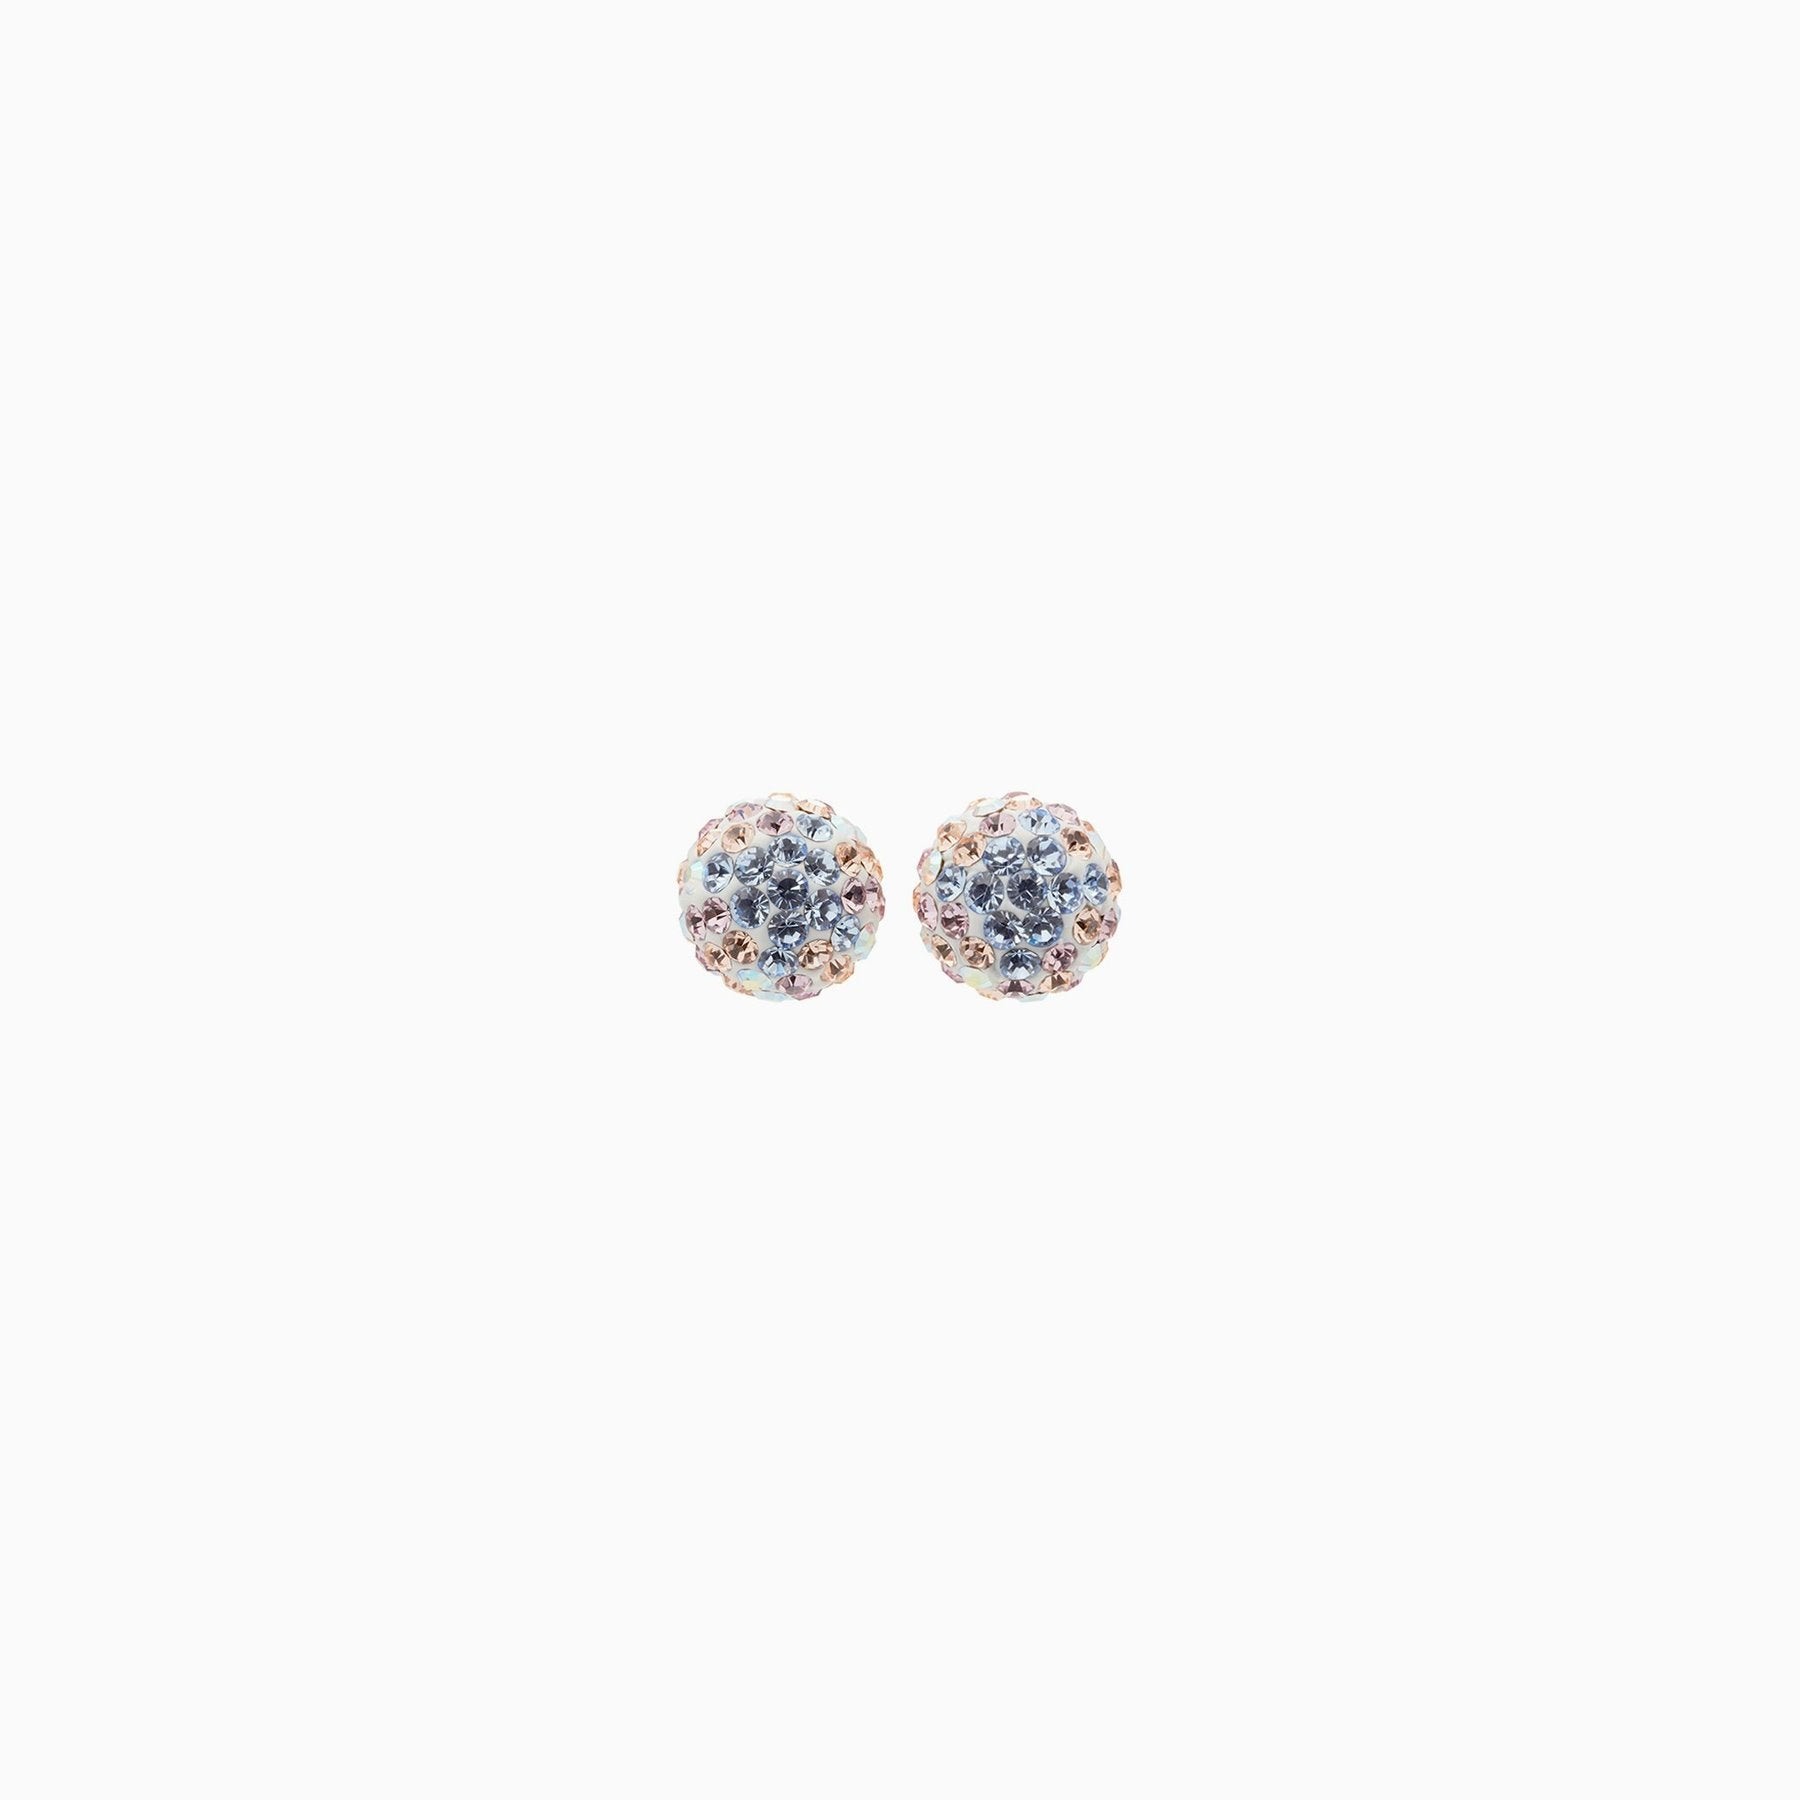 H&B Sparkle Ball™ Stud Earrings - 8mm Ethereal